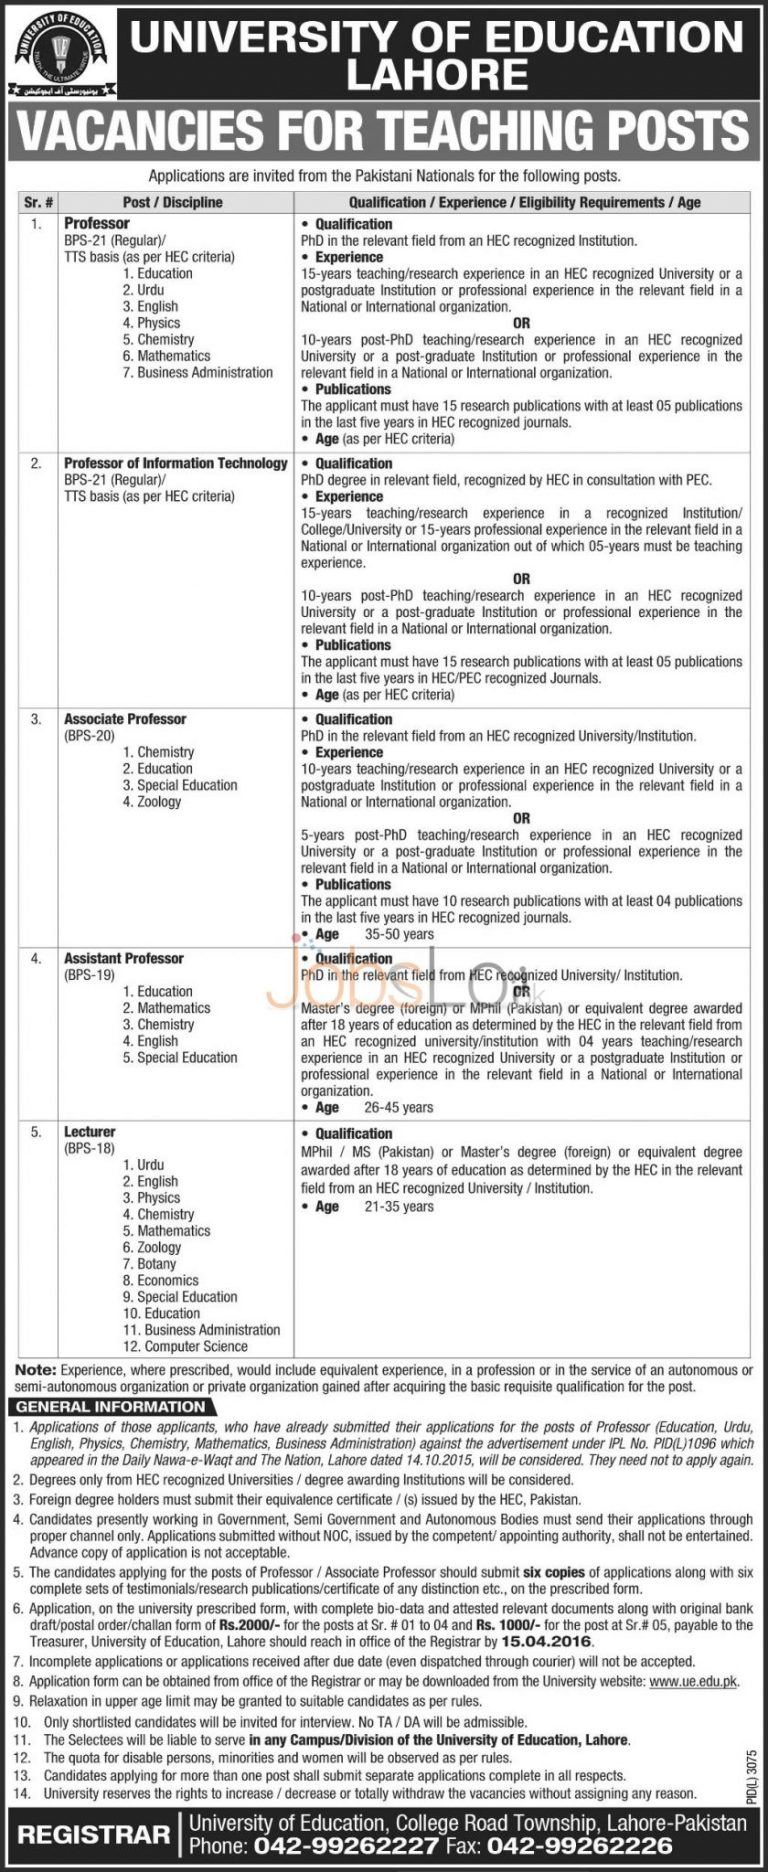 University of Education Lahore 2016 For Teaching Staff Application Form